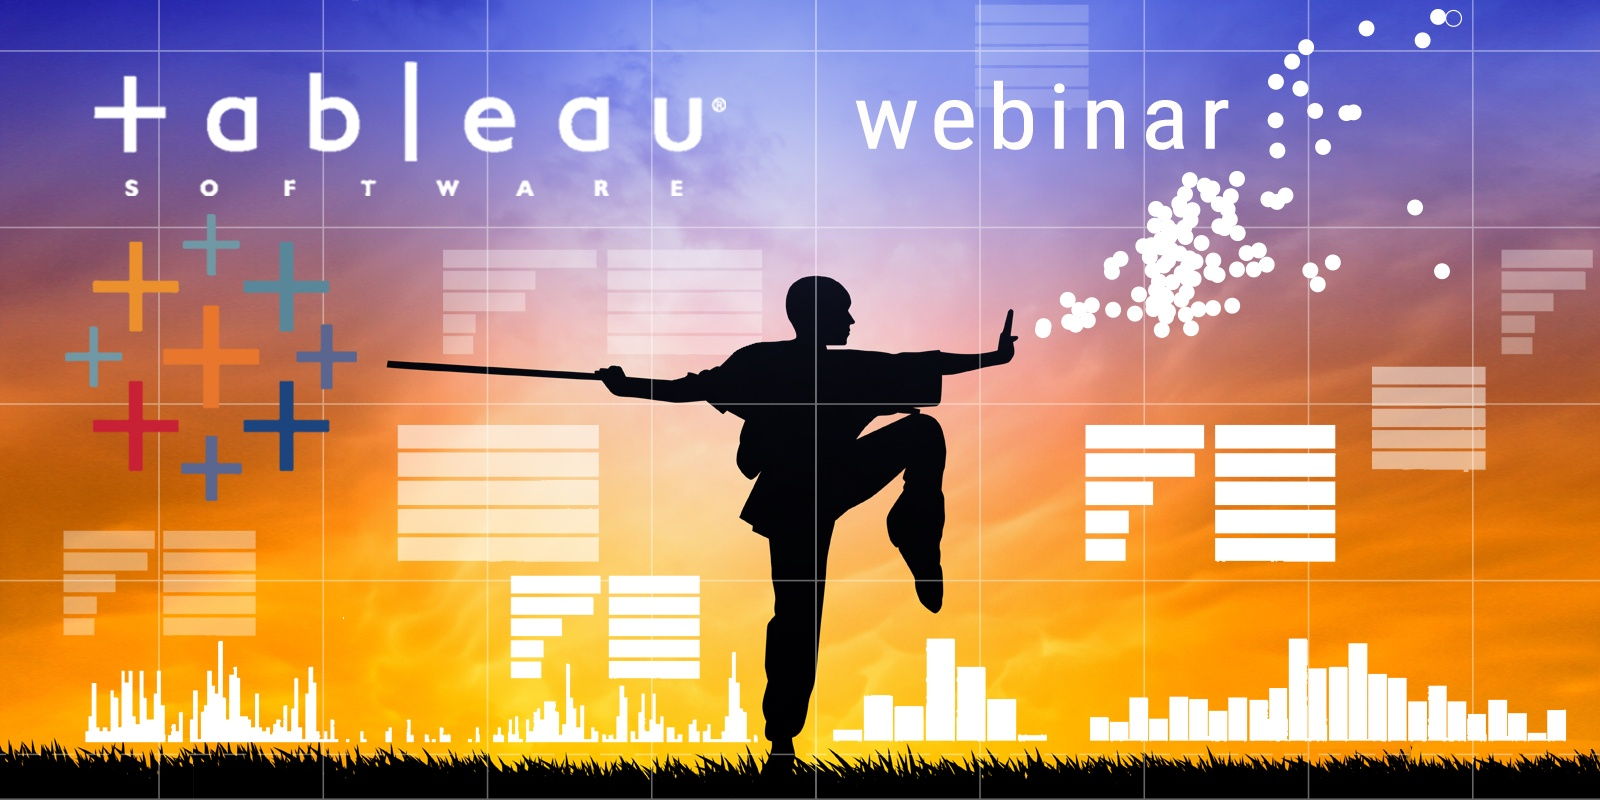 Webinar: Exciting New Features in Tableau and Tableau Prep!